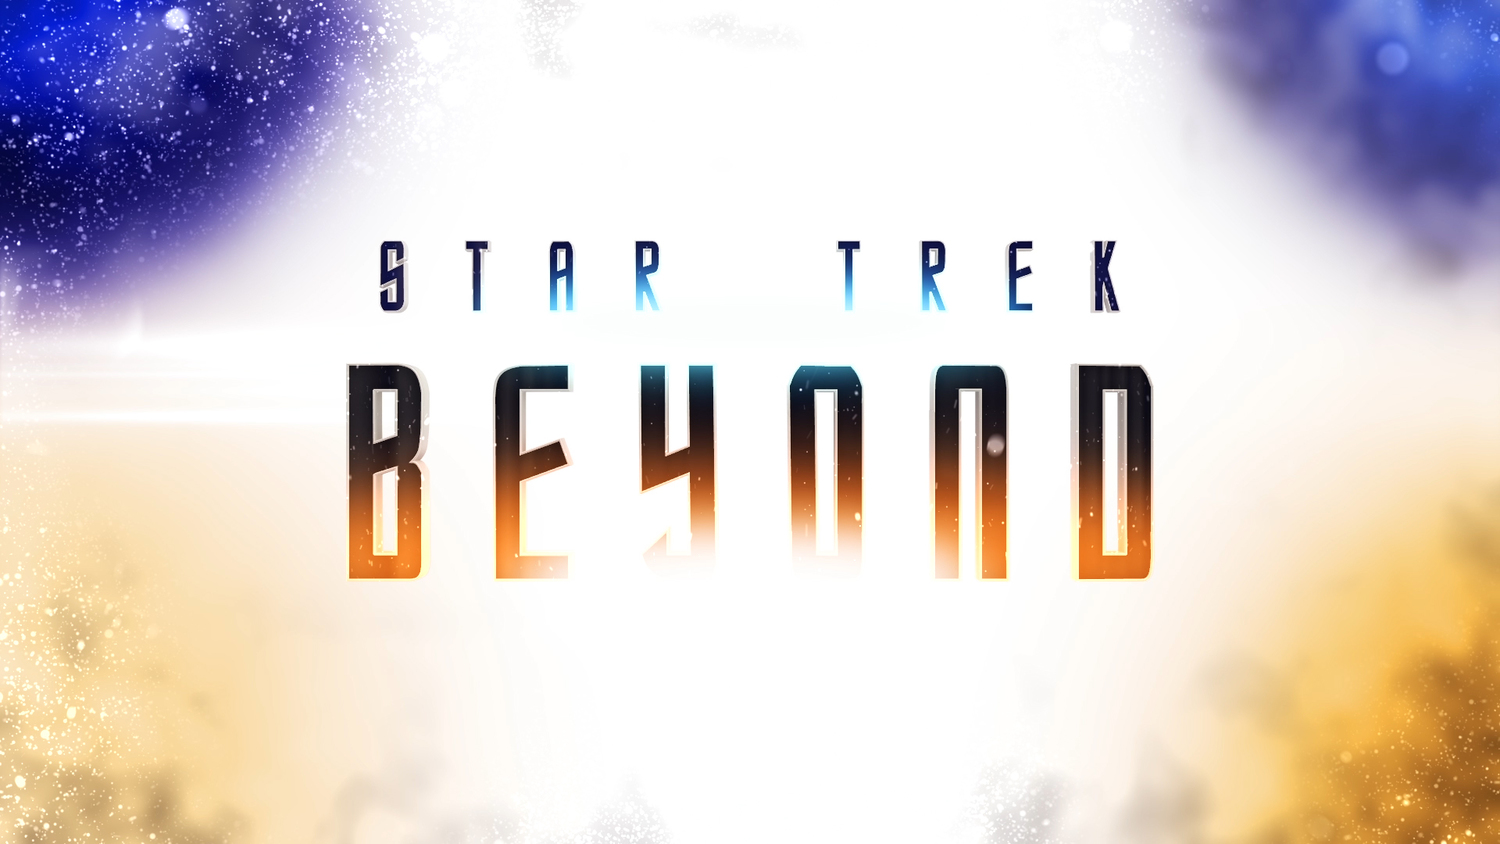 Optical flares plug in tutorials for after effects motion recreate the 3d movie title seen in star trek beyond with adobe after effects baditri Image collections